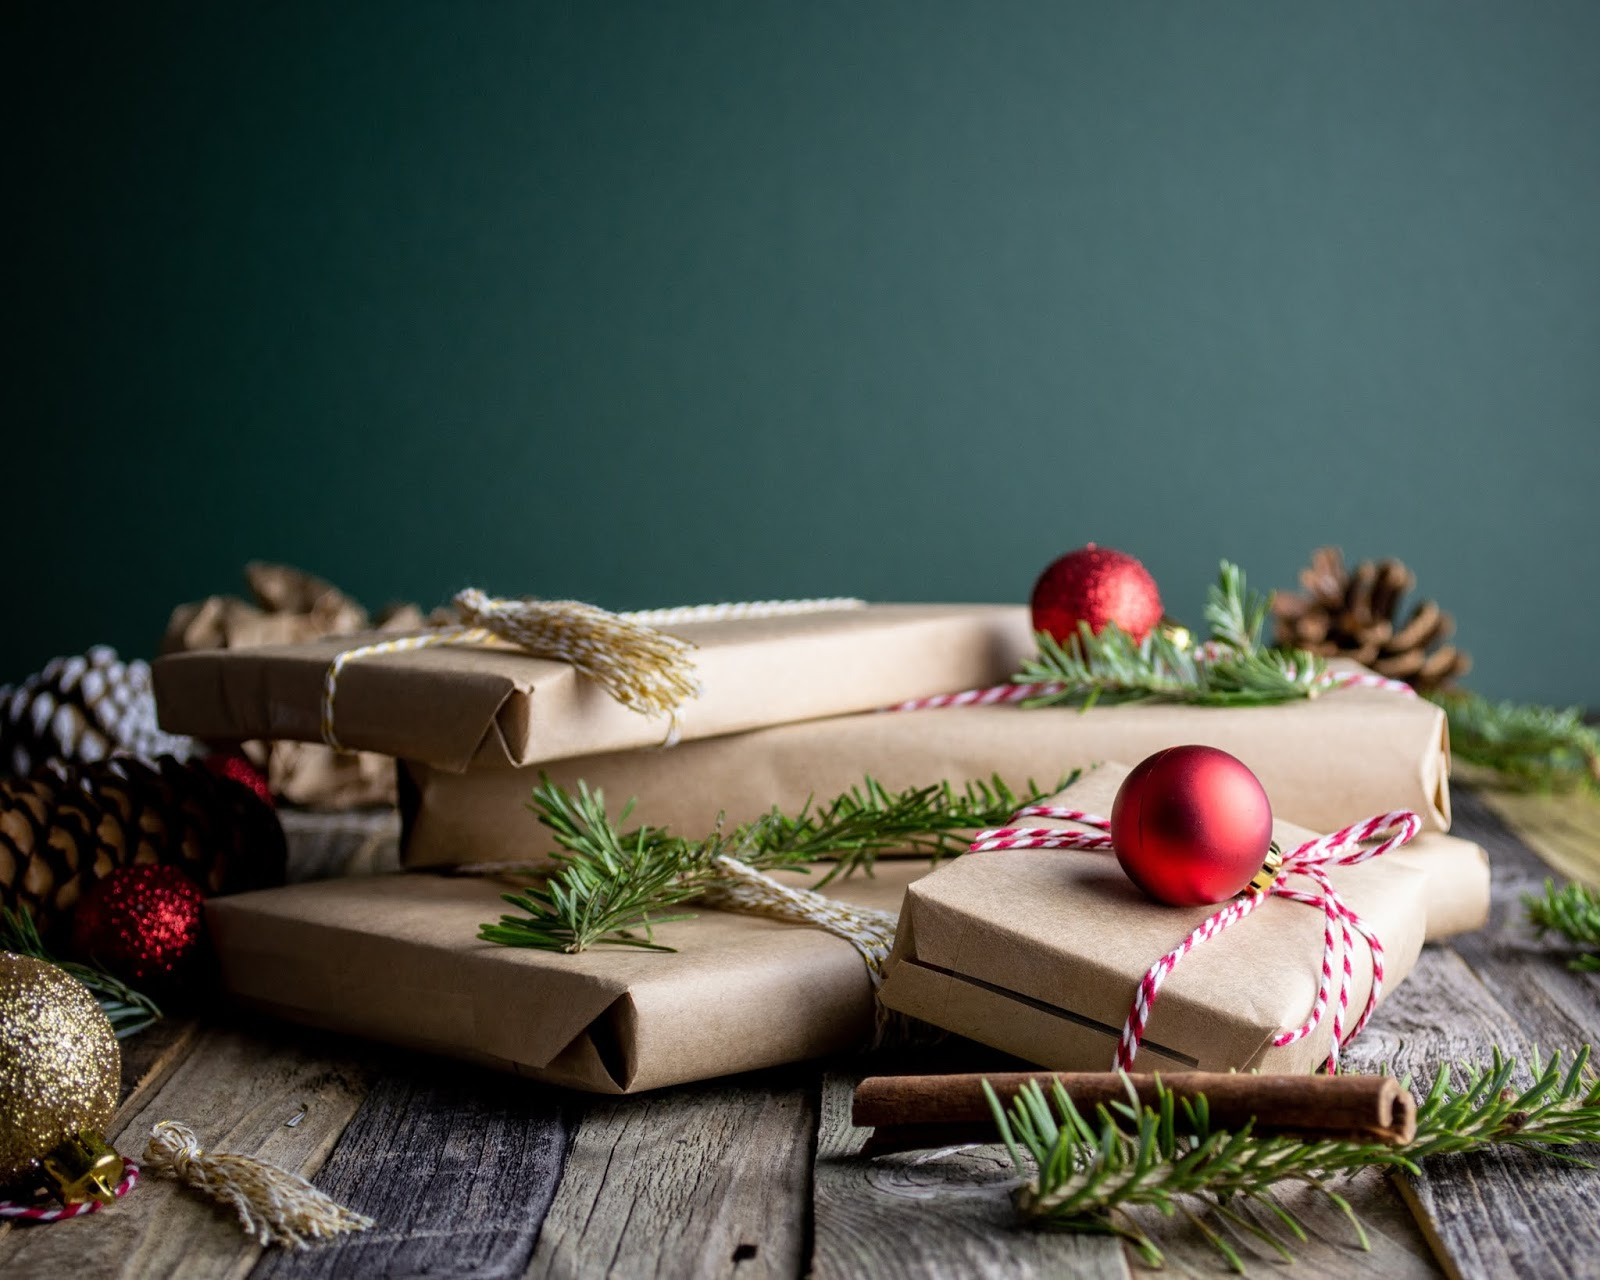 Four presents wrapped in brown paper with red and white ribbon string around them, in front of a teal background, surrounded by sprigs of pine, baubles, and cinnamon sticks.